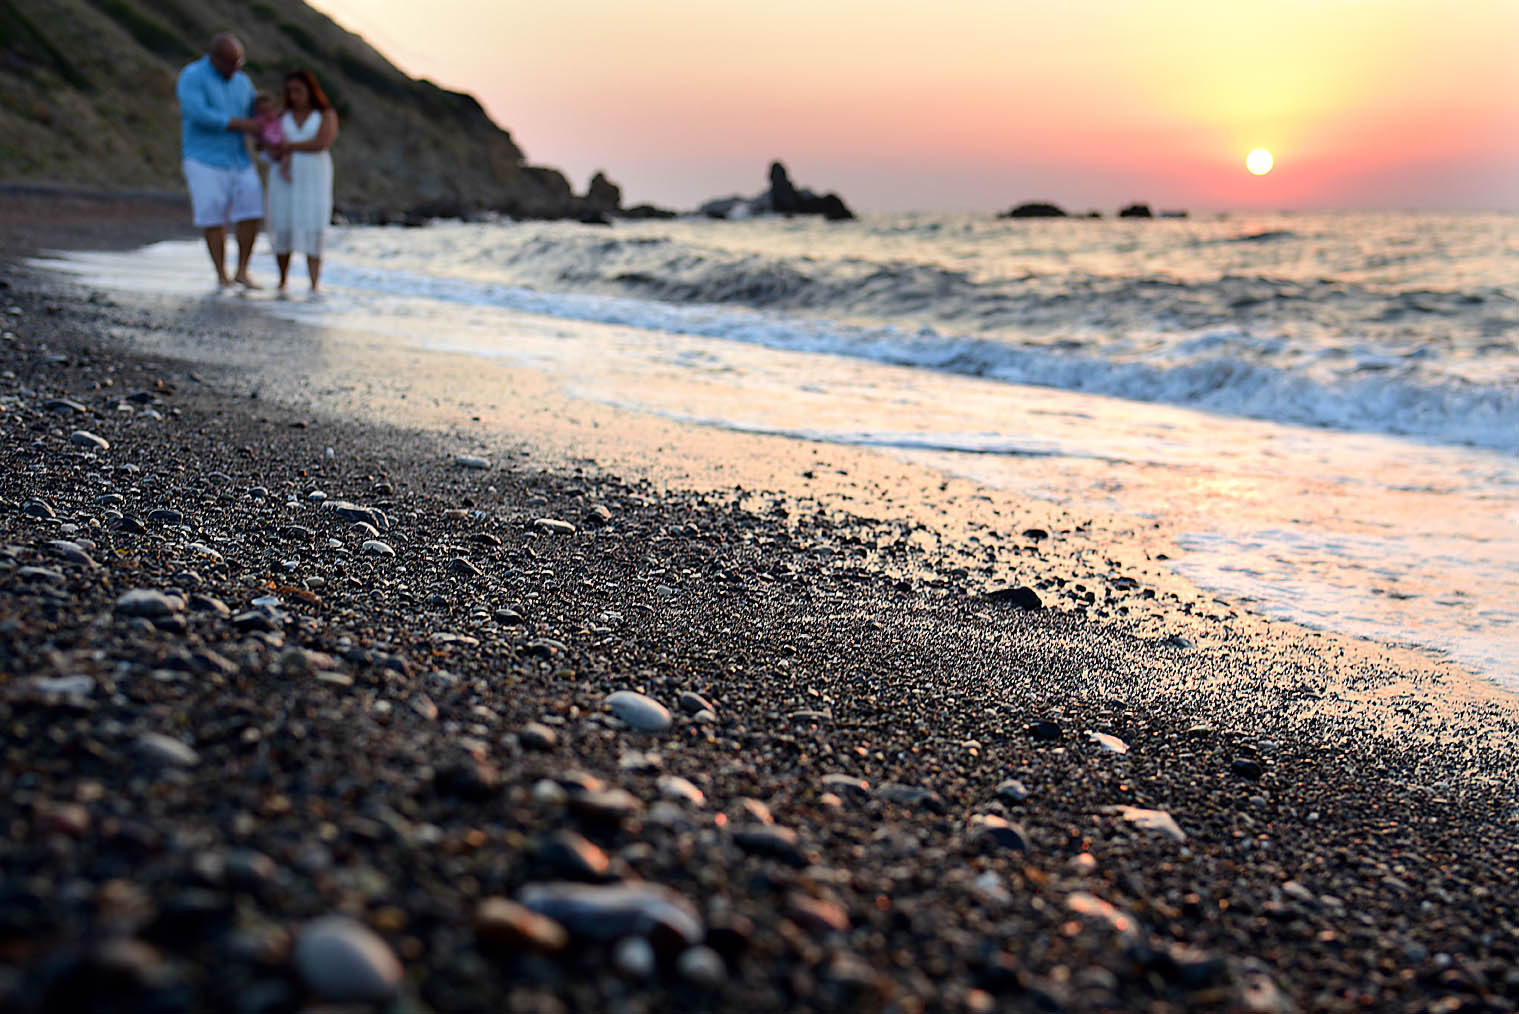 Baptism-chios-island-from-newyork-kambos-christening-sea-walking-together-01